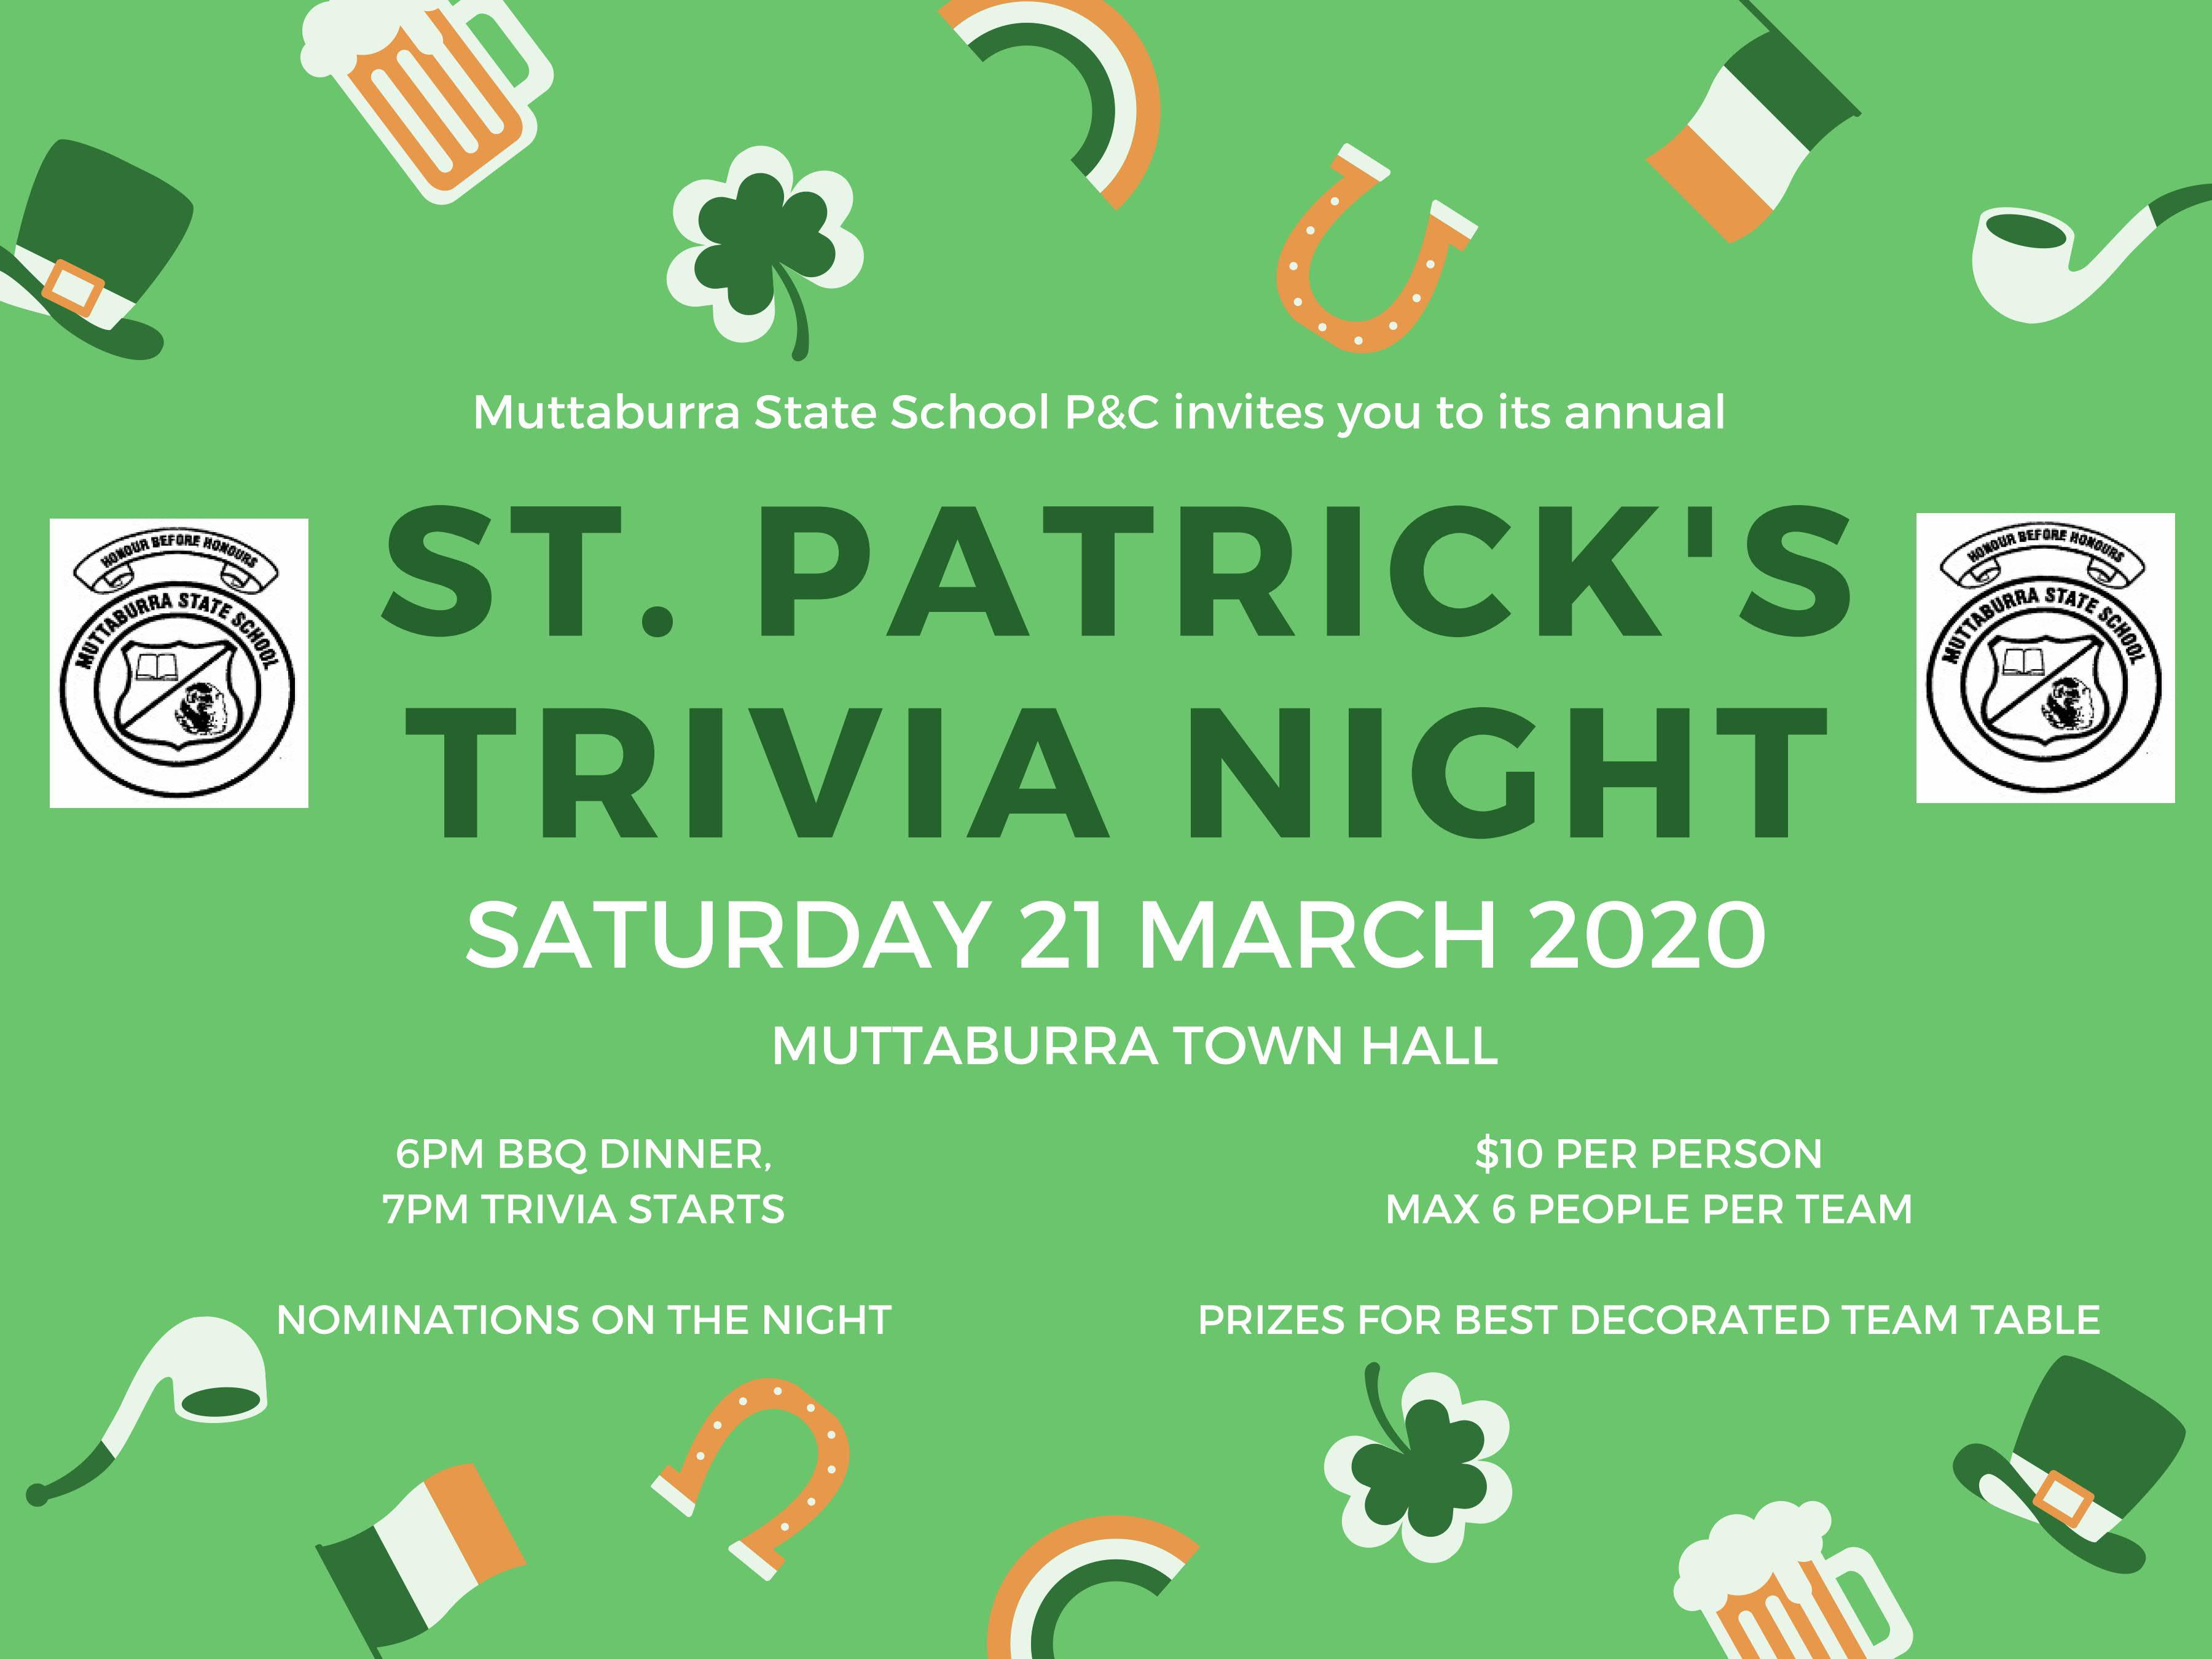 Muttaburra State School P&C - St. Patrick's Trivia Night, March 2020